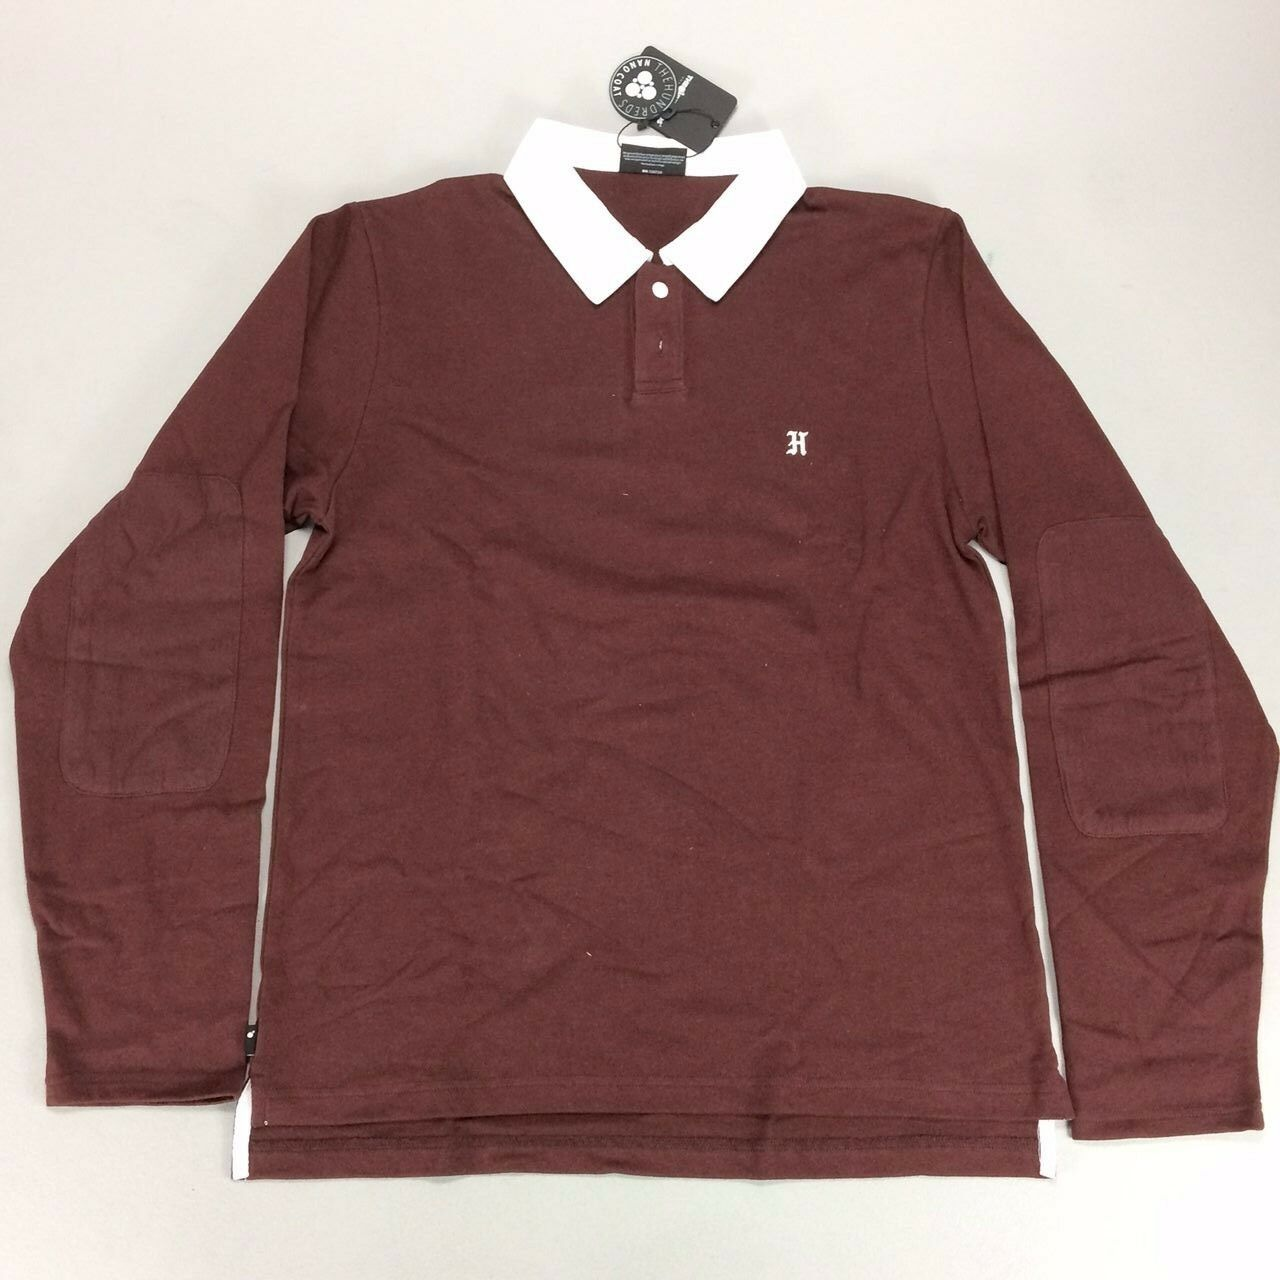 The HundROTs Valour LS Rugby Polo Long Sleeve T-Shirt In Burgundy Größes S L